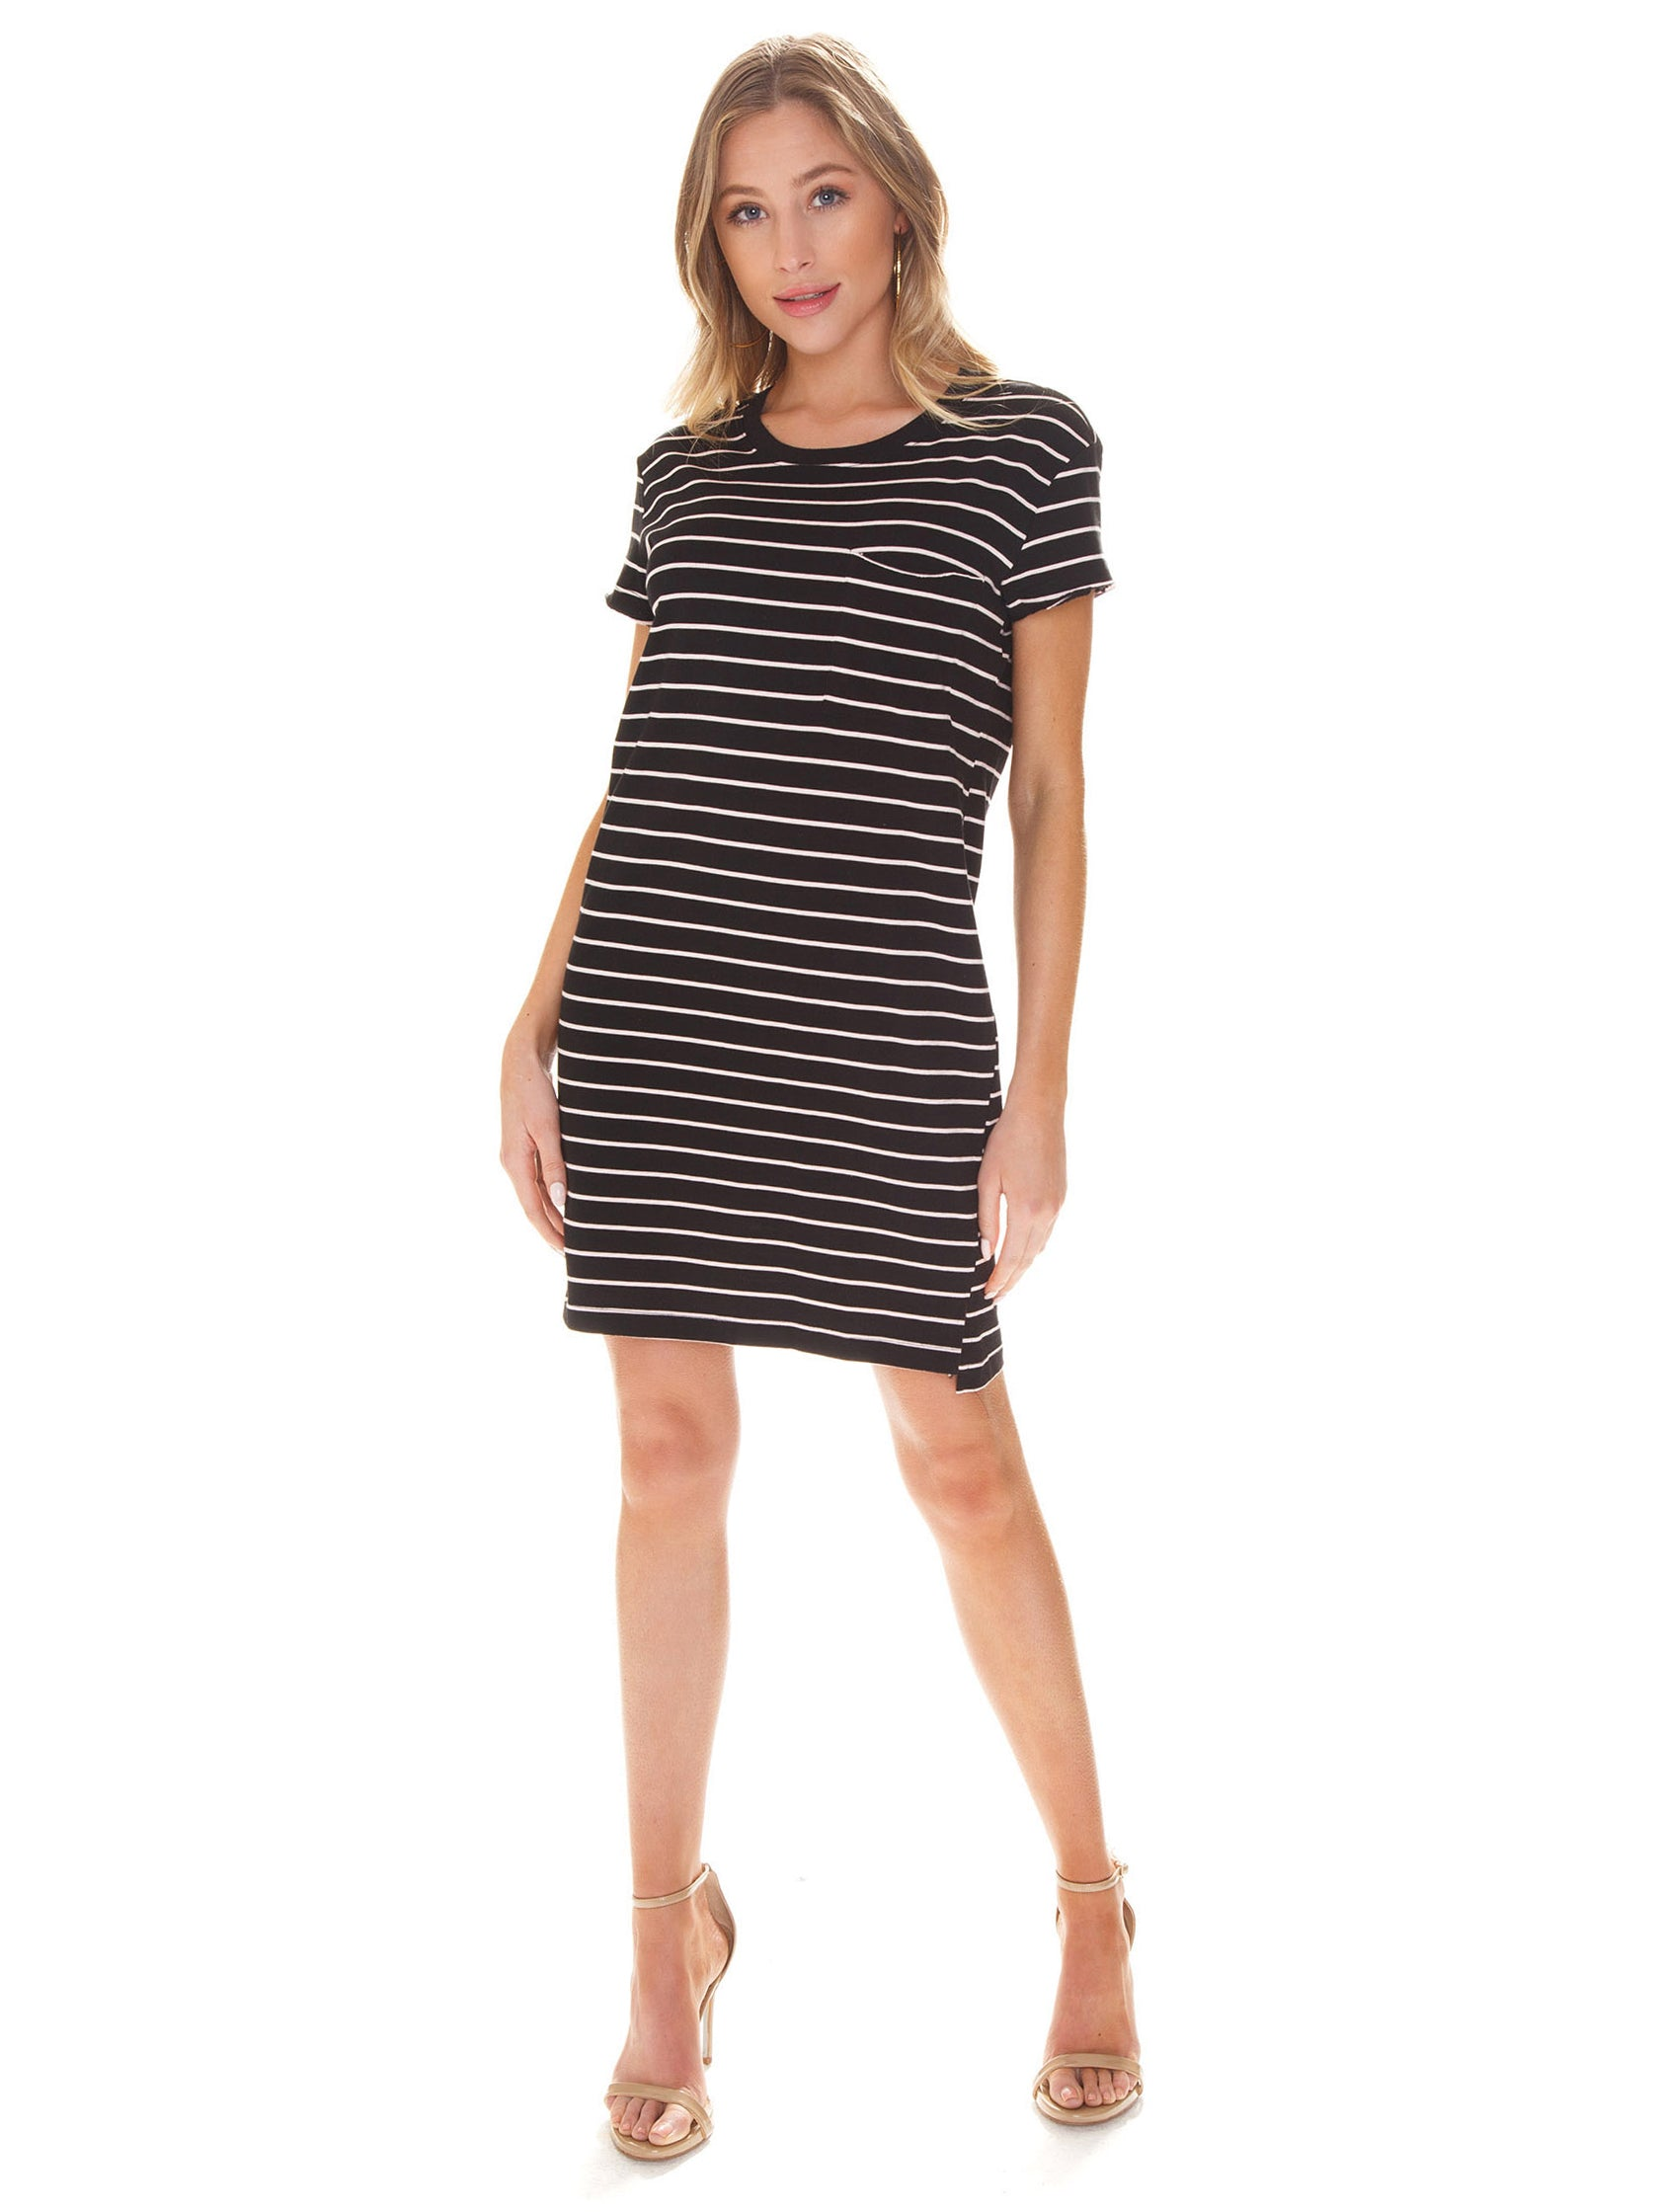 377026e88810 Girl outfit in a dress rental from SANCTUARY called One Pocket T-shirt Dress